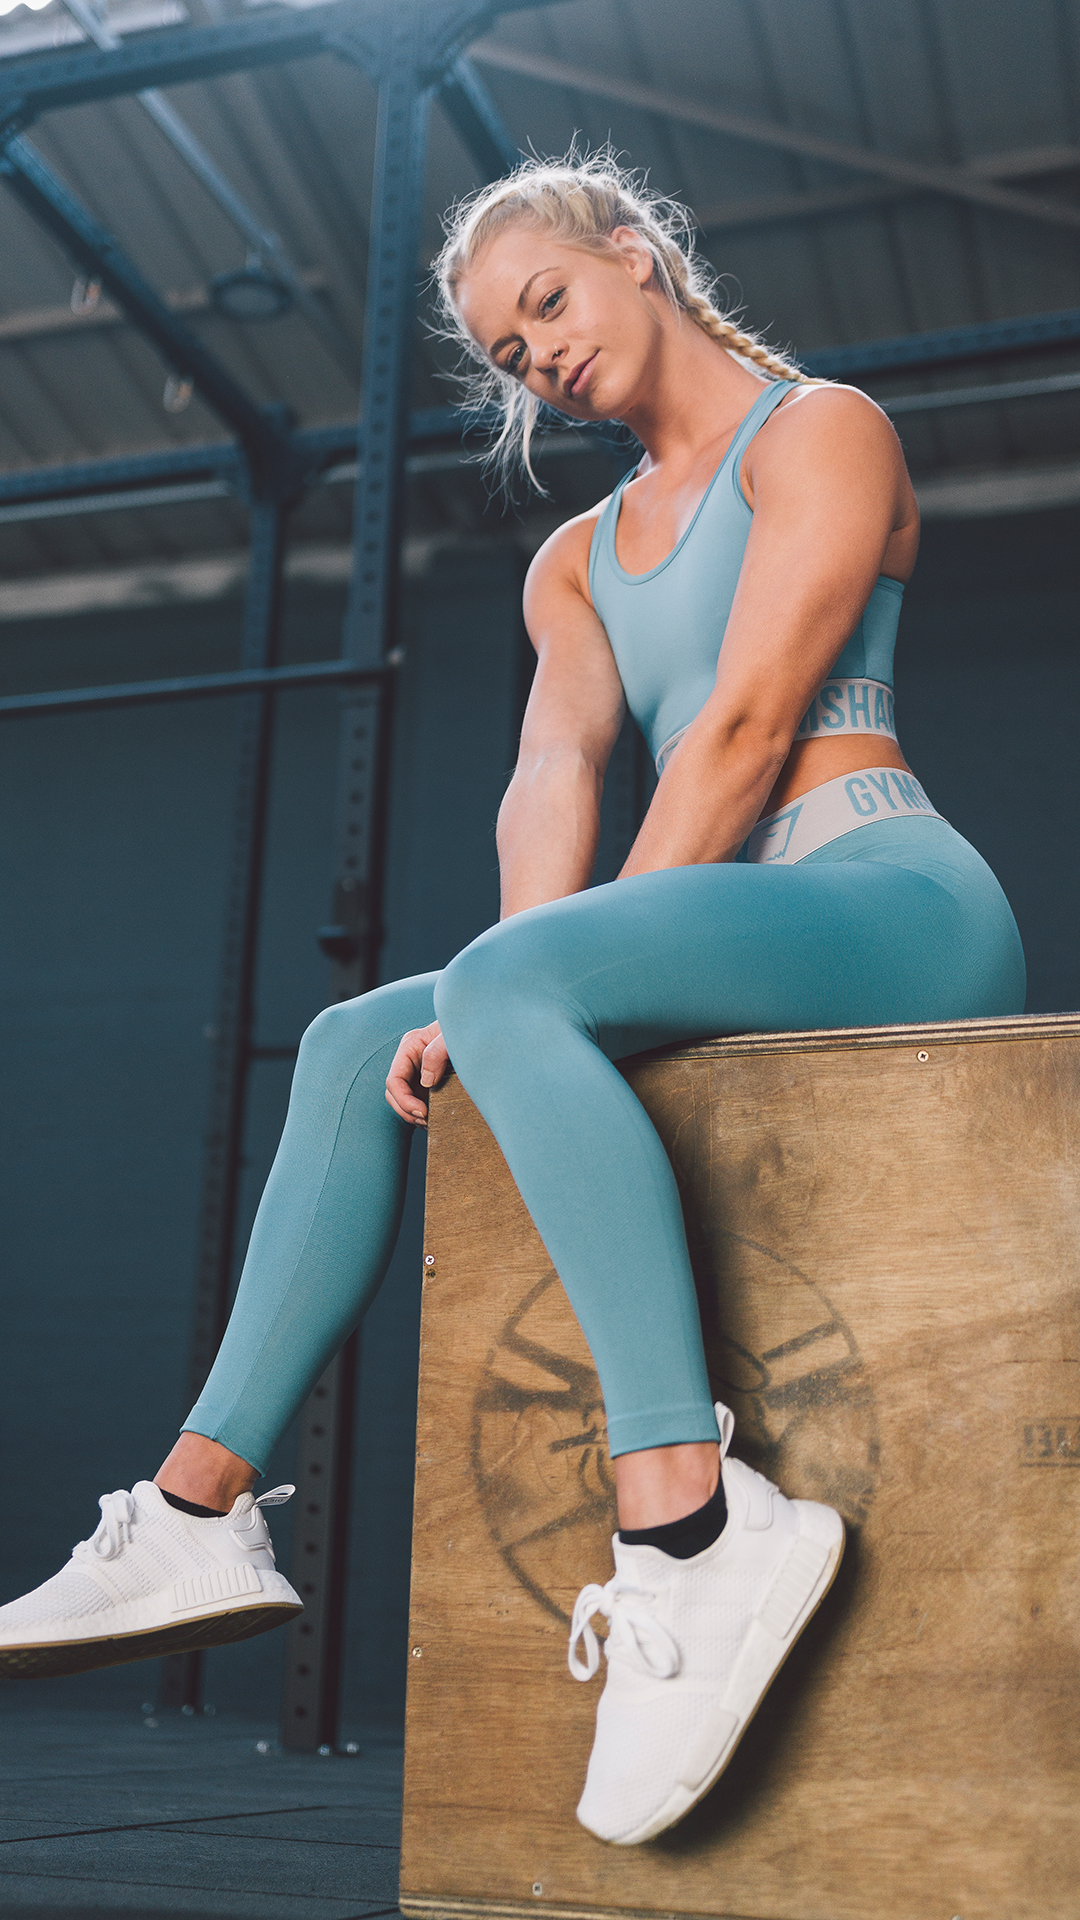 8d4ef46c21dde9 Wearing the Gymshark Fit collection for her power workout in the Gym. # Gymshark #Gym #Sweat #Train #Perform #Seamless #Exercise #Strength #Strong  #Power ...